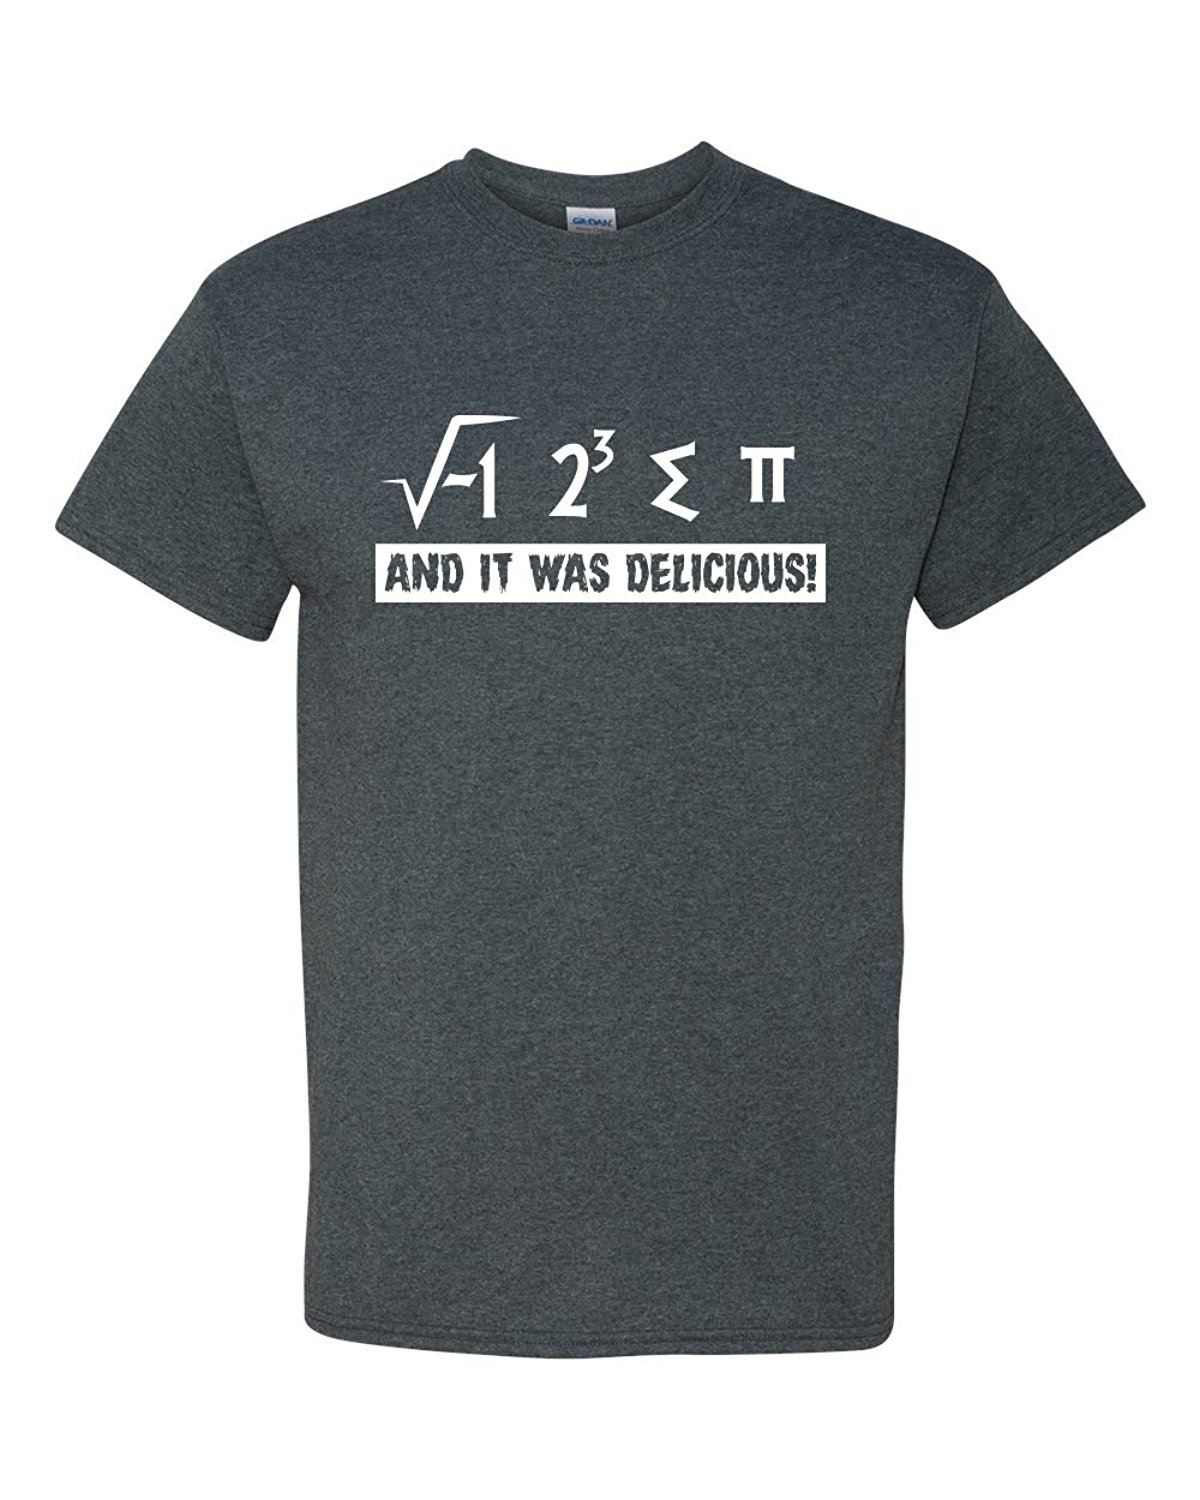 I Ate Some Pie And It Was Delicious Pi Funny Math 3.14 Adult Mens Graphic Tee Humor Pun T-Shirt Heather Grey